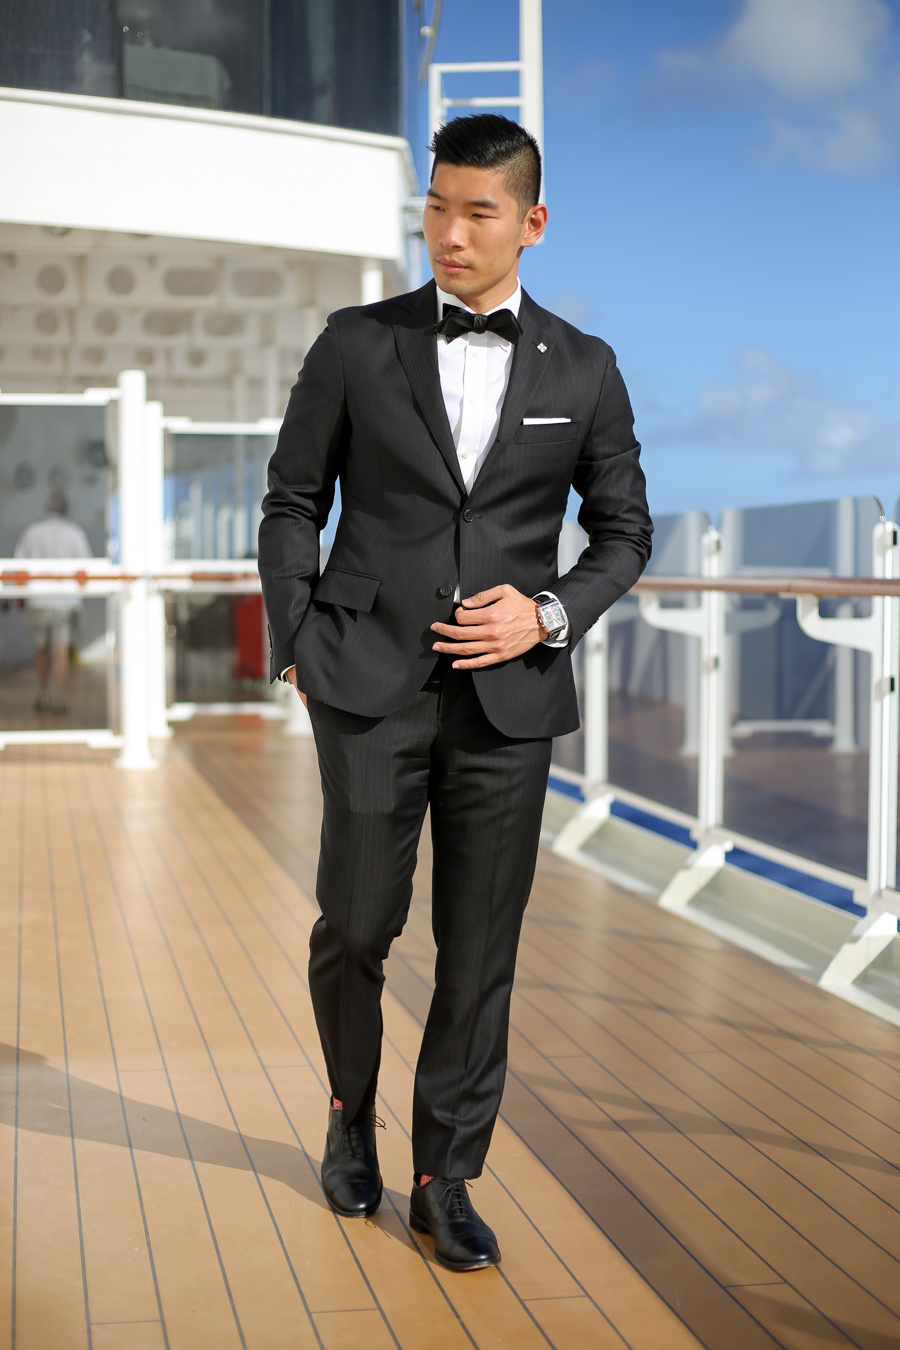 Menswear, Masquerade, Todd Snyder Suit, Allen Edmonds, Hugo Boss, Ball, Leo Chan, Cunard Cruise, Alicia Mara